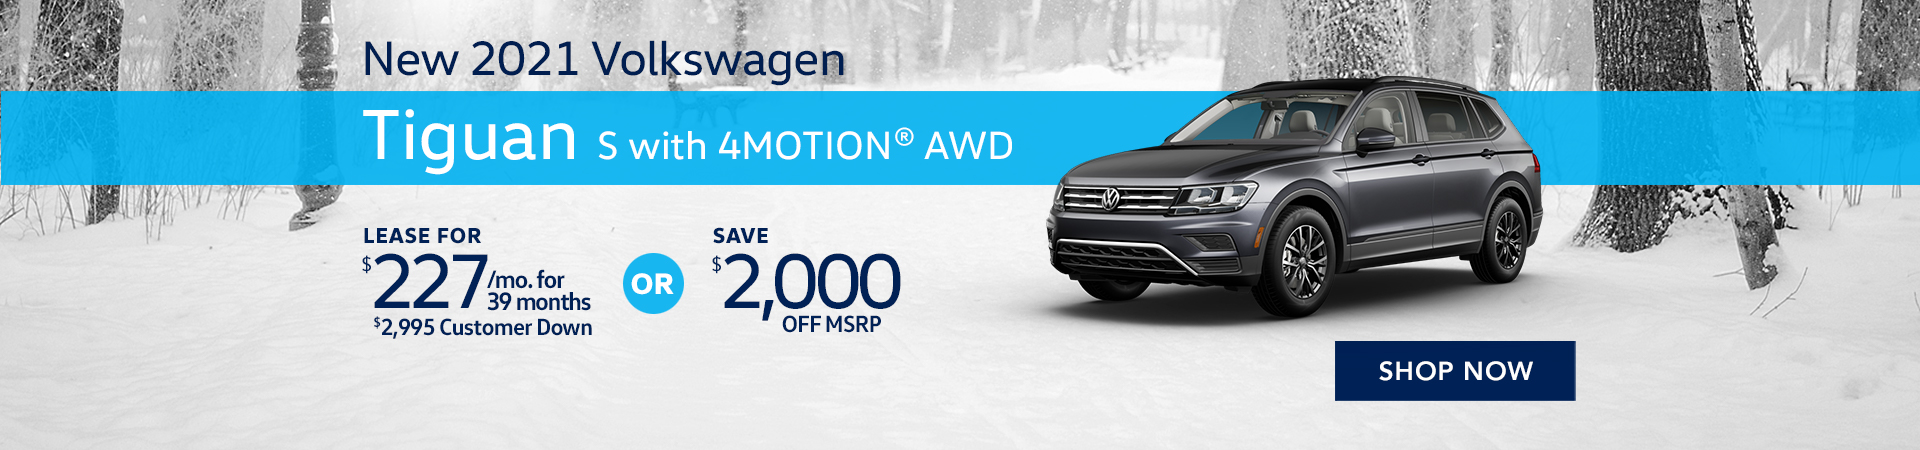 BVW_1920x450_New 2021 Volkswagen Tiguan S with 4MOTION® AWD_01_21